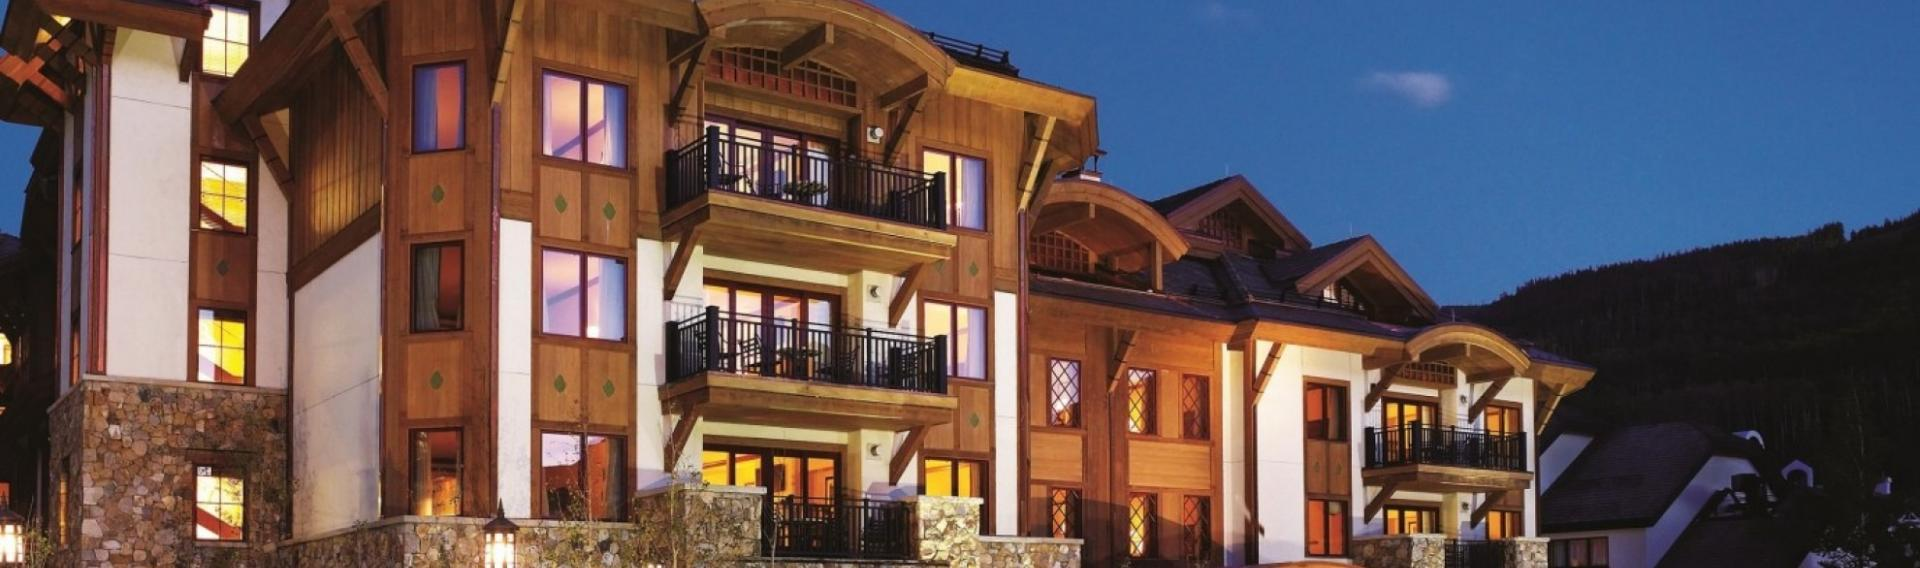 The Sebastian - Vail in Vail, Colorado for CME, CLE, and CE